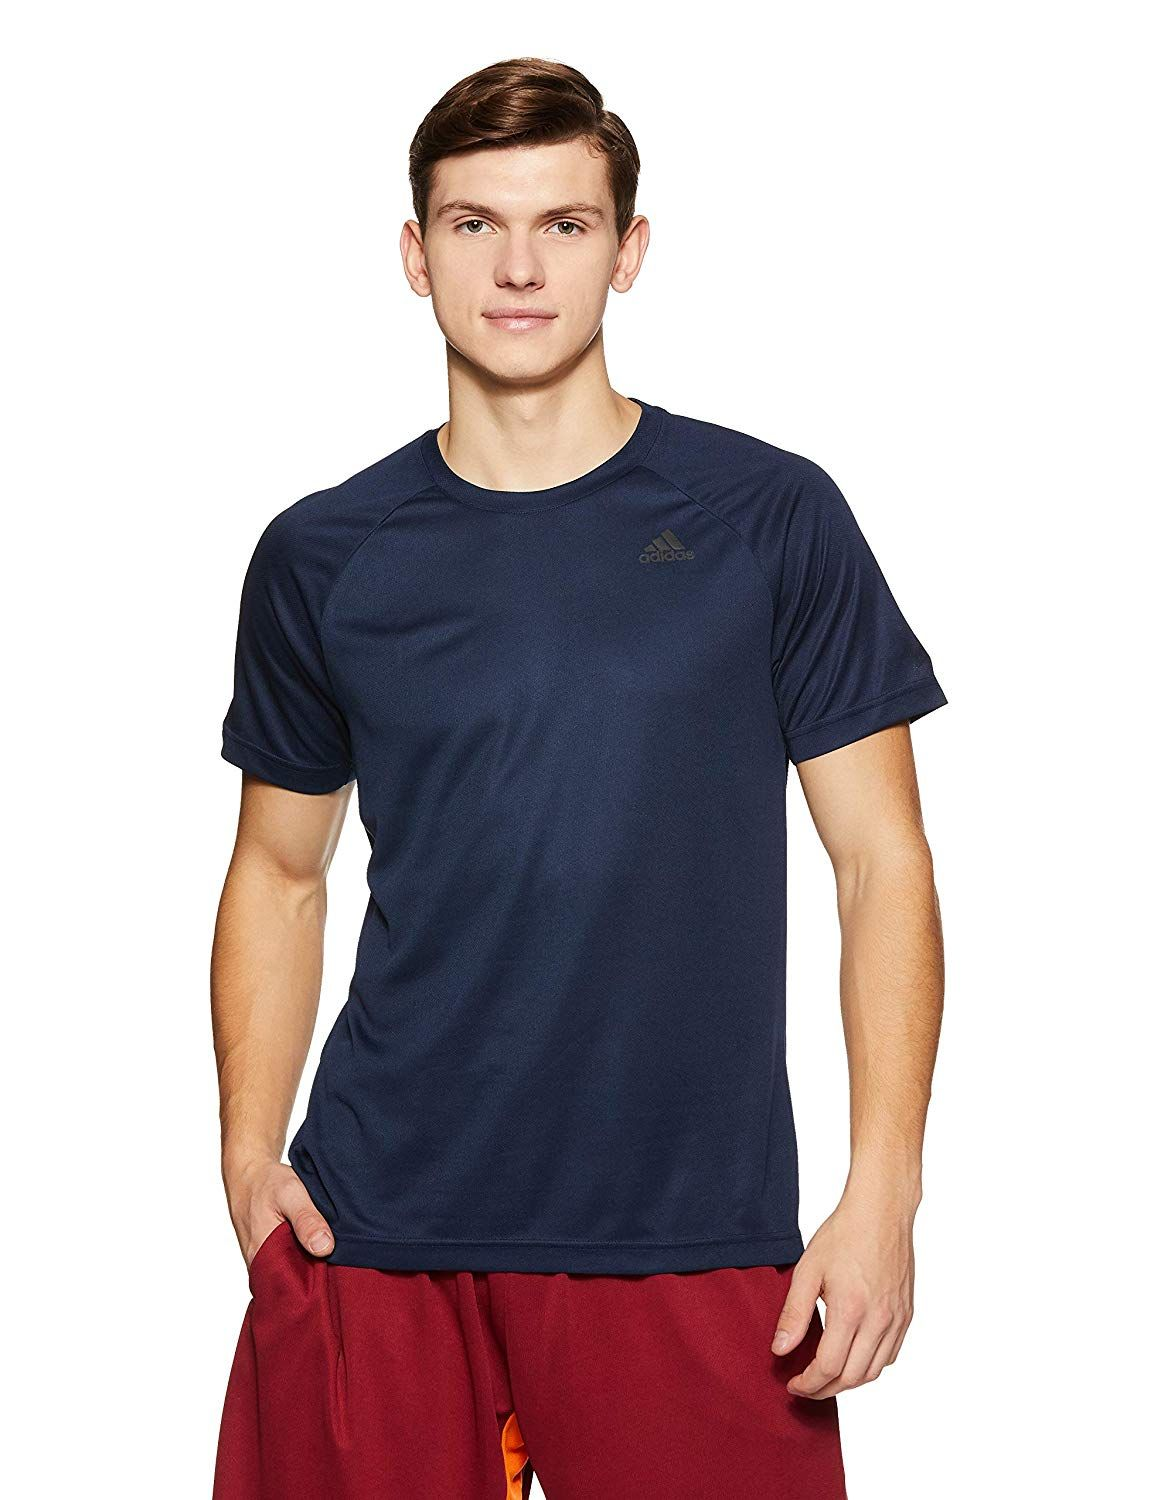 aa52dcb107af2 Adidas Men's Plain Regular Fit T-Shirt: Amazon.in: Clothing ...